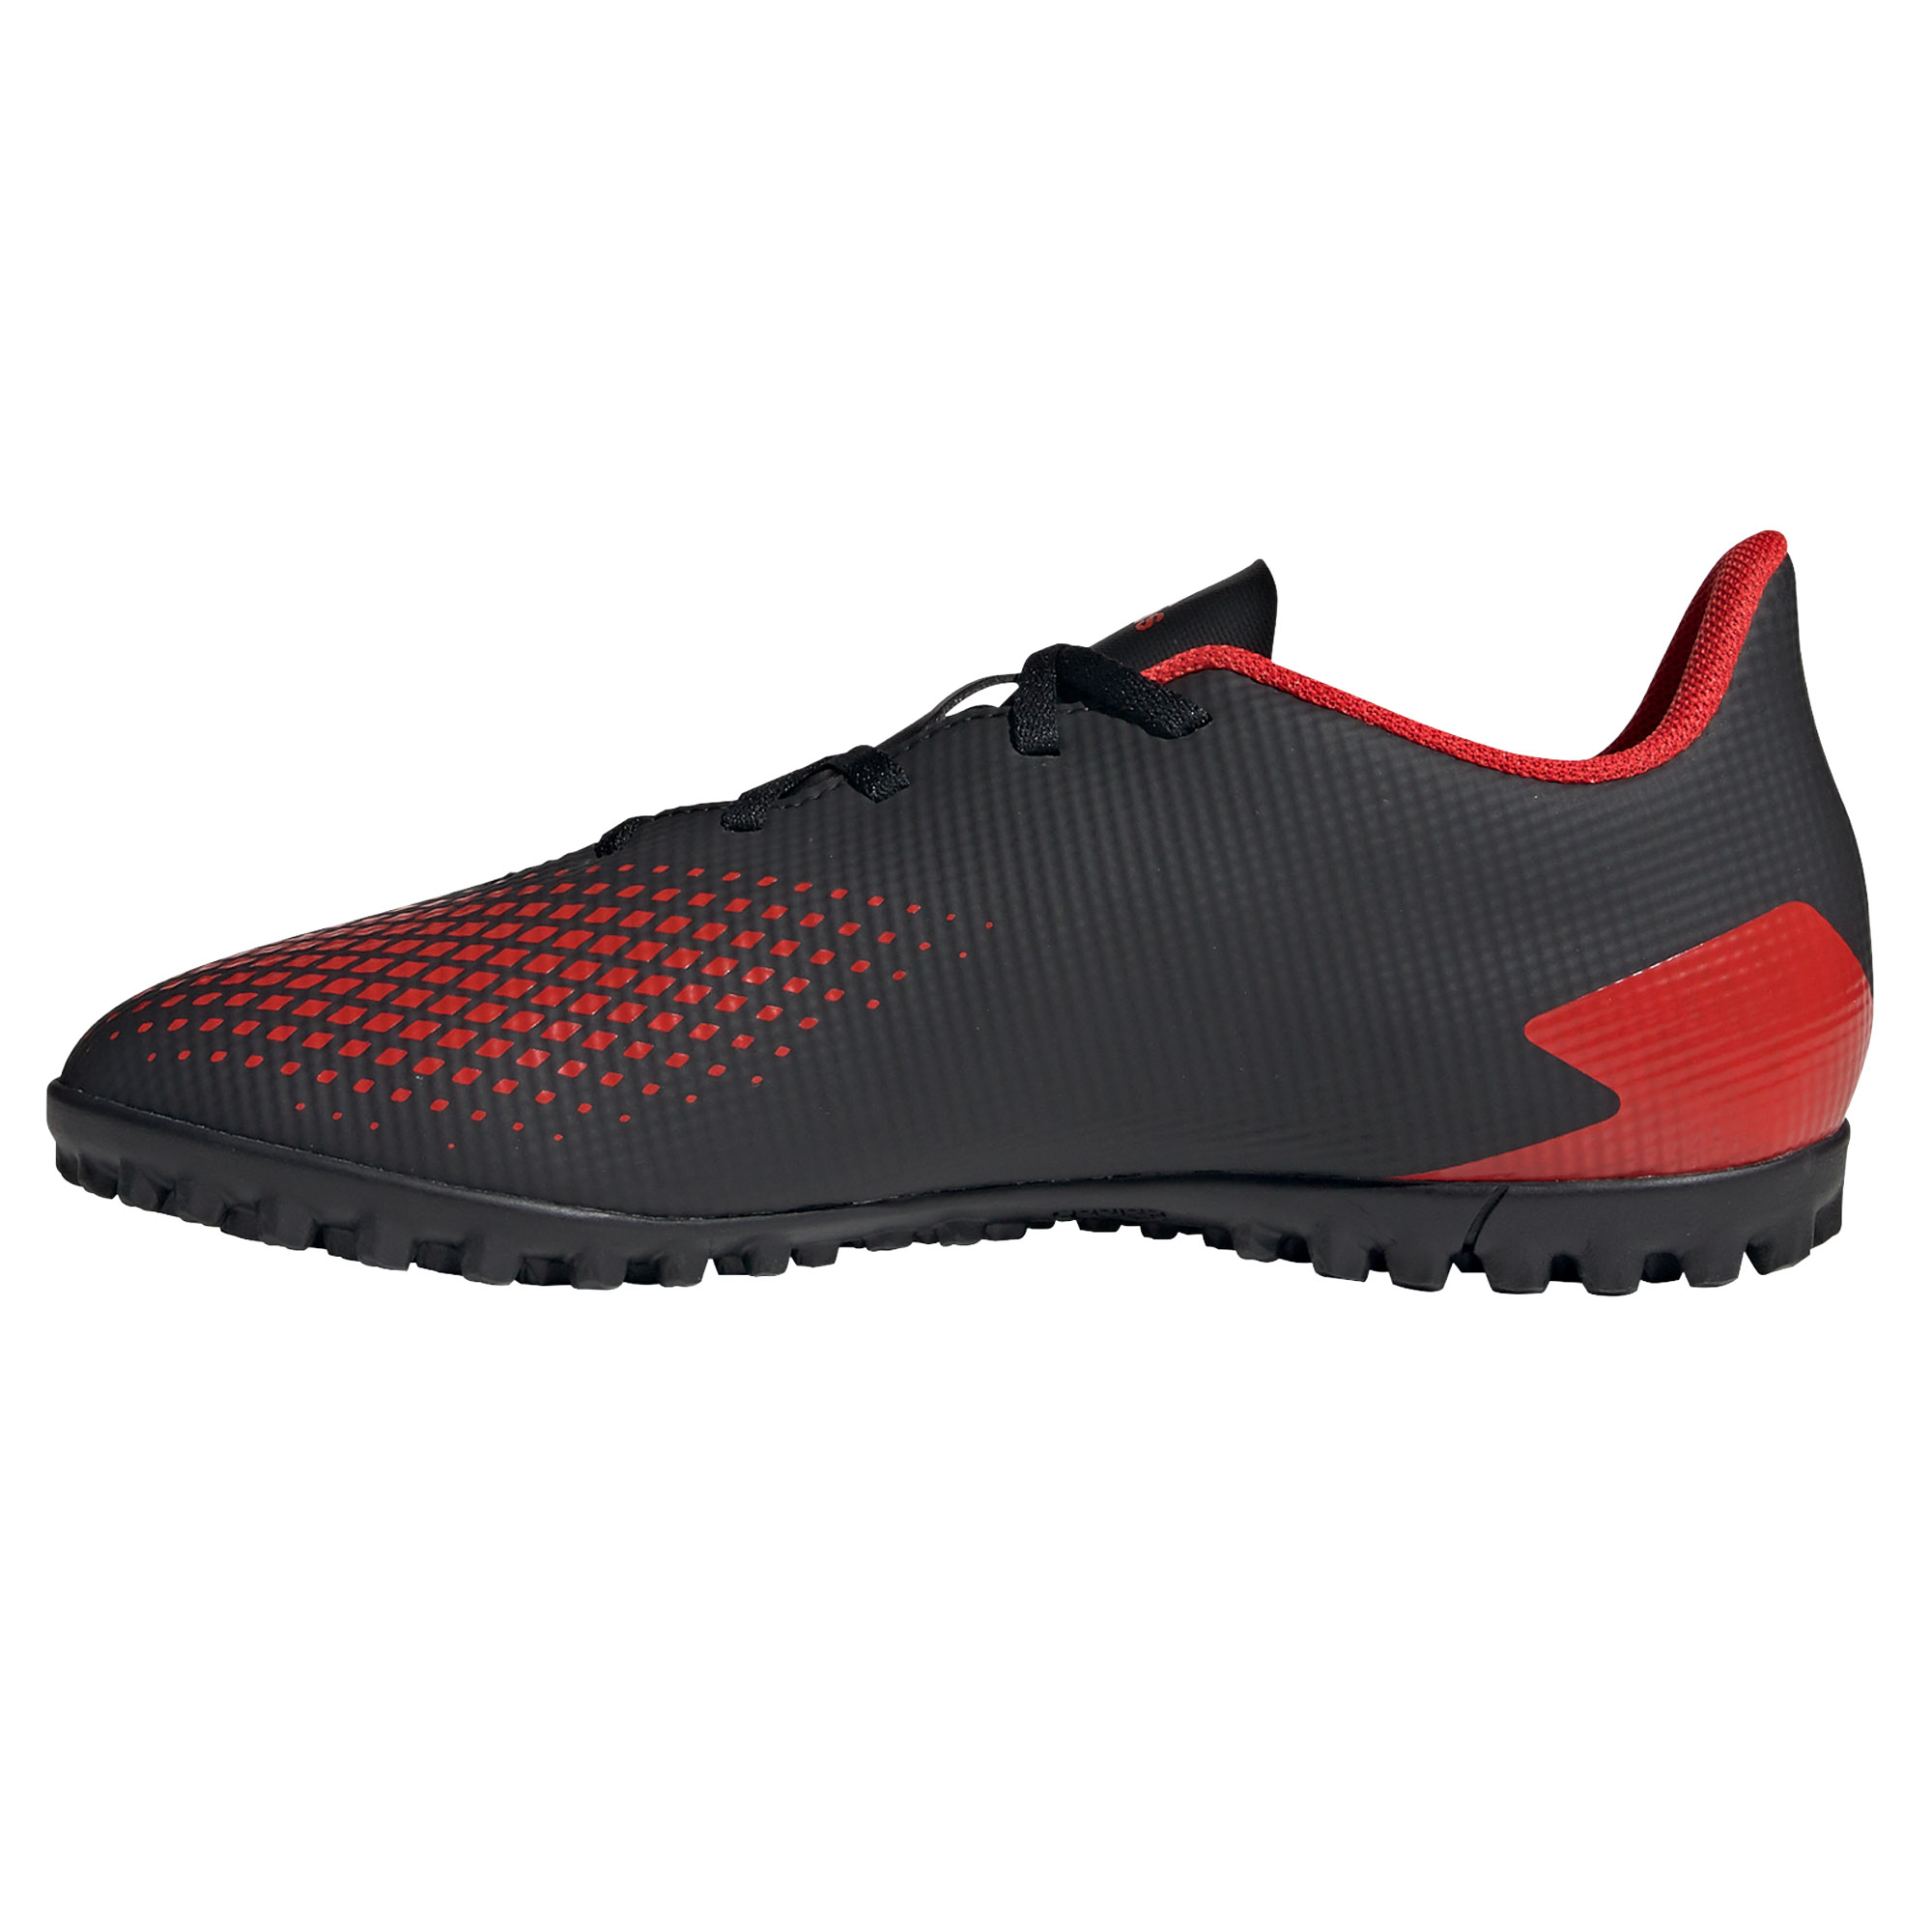 Adidas-Predator-20-4-TF-pour-Homme-Football-Turf-Basket-Chaussure-Noir-Rouge-mutantes miniature 8